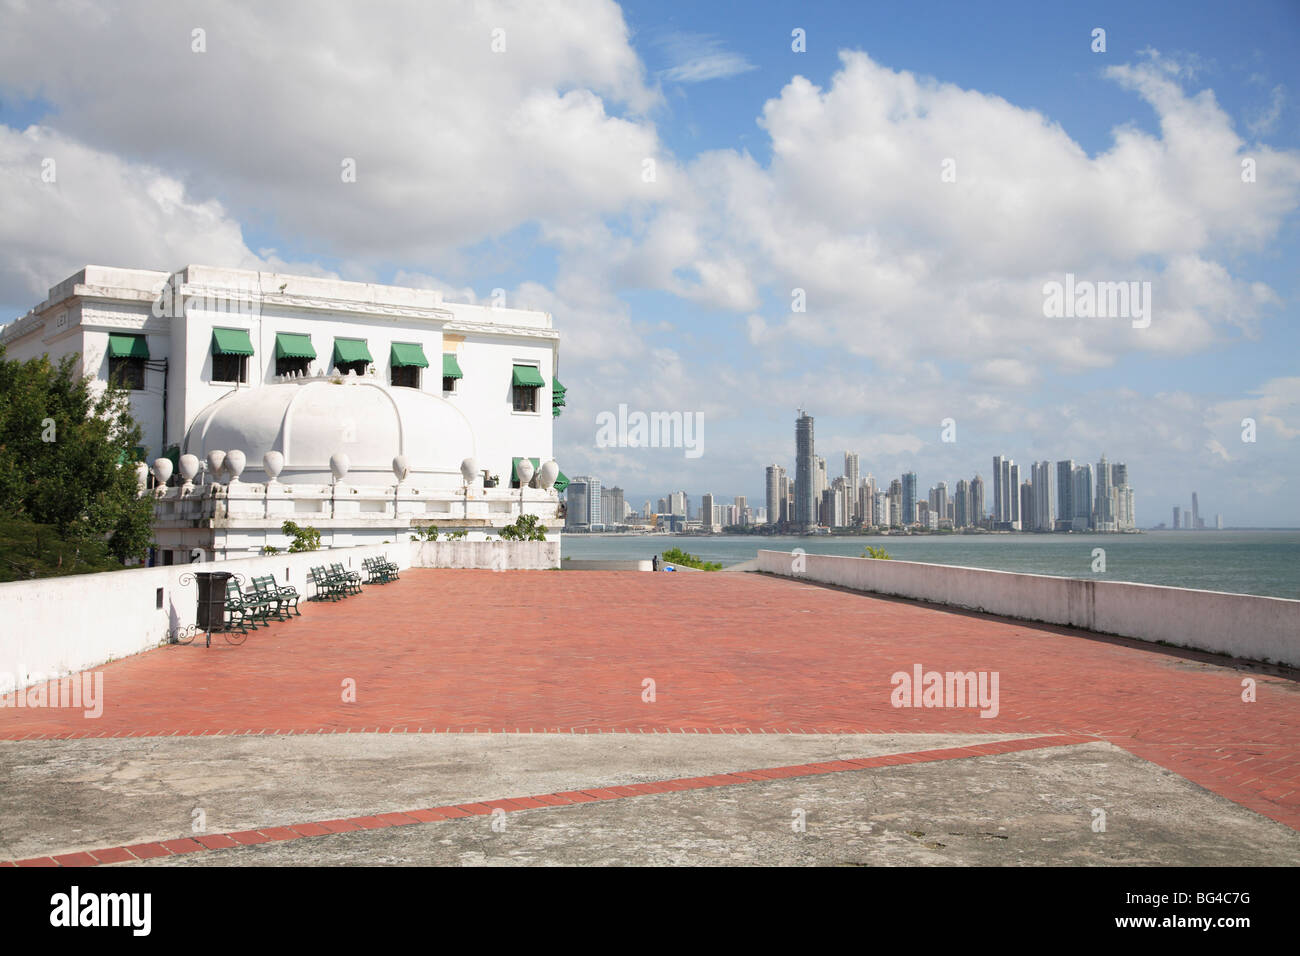 Paseo General Esteban Huertas, Casco Viejo, San Felipe District, Panama City, Panama Bay, Panama, Central America - Stock Image